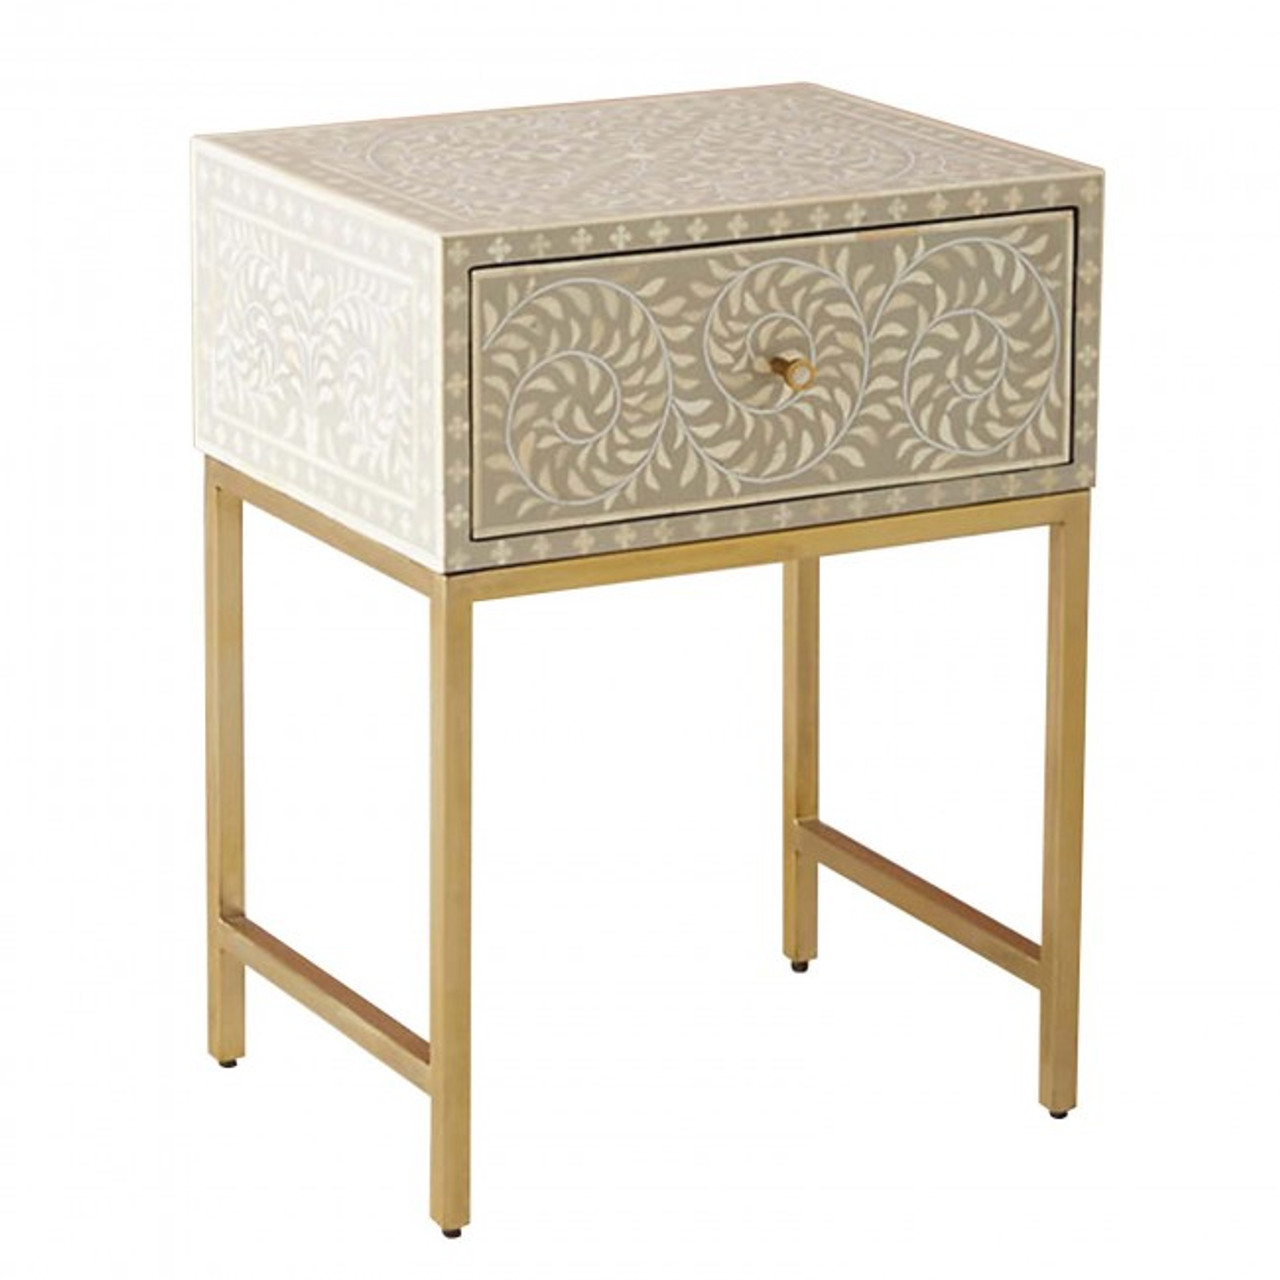 Exceptionnel Bone Inlay Bedside Table With Brass Legs